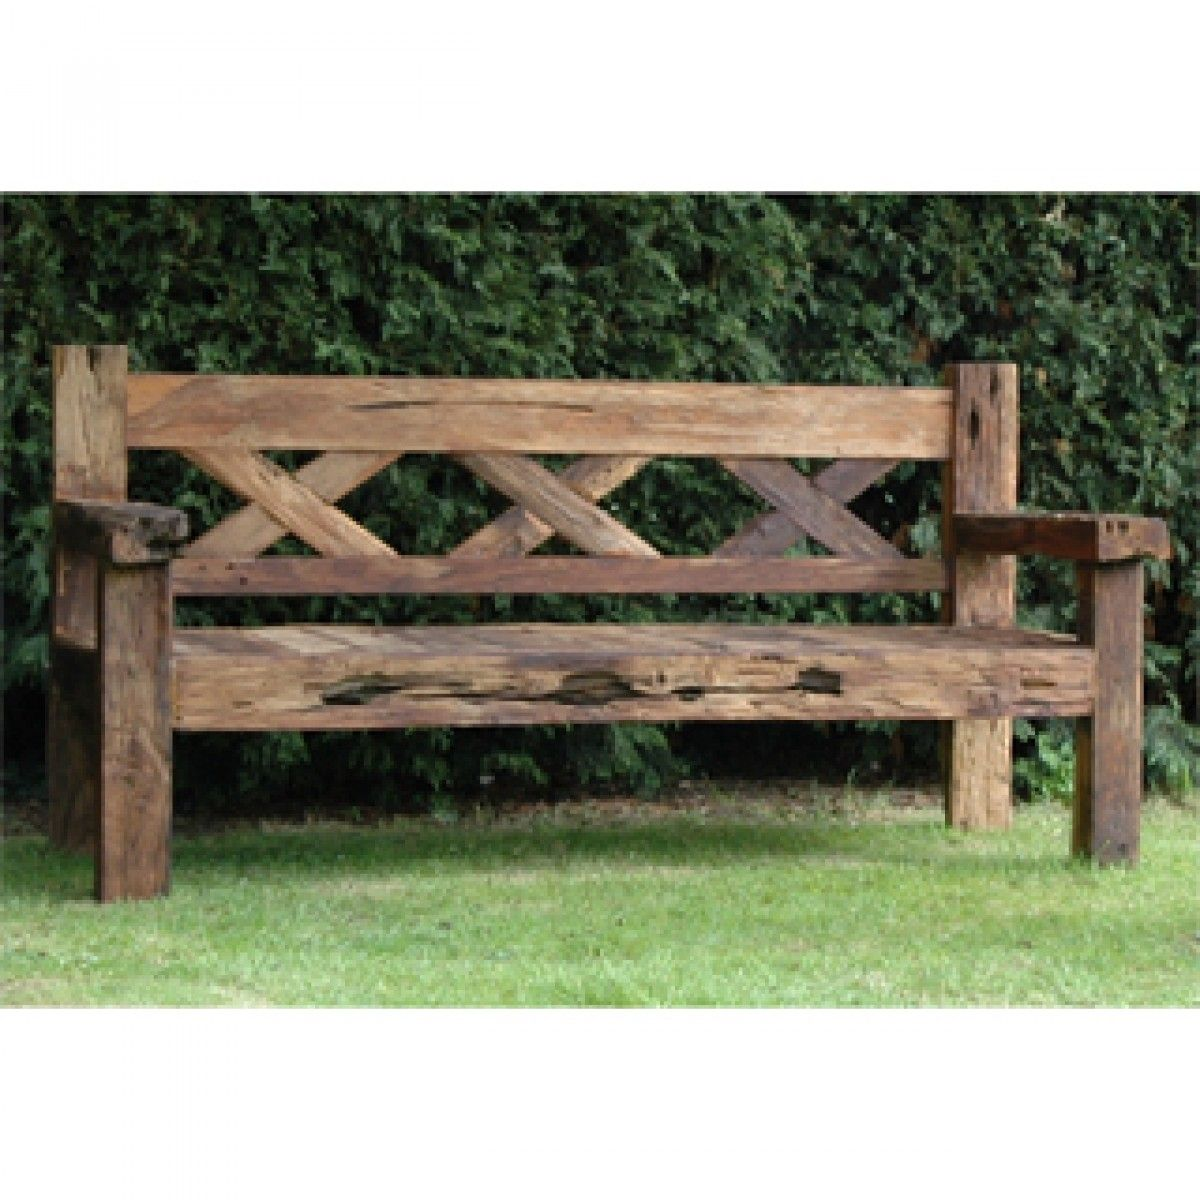 Reclaimed Teak Rustic Bench Outdoor